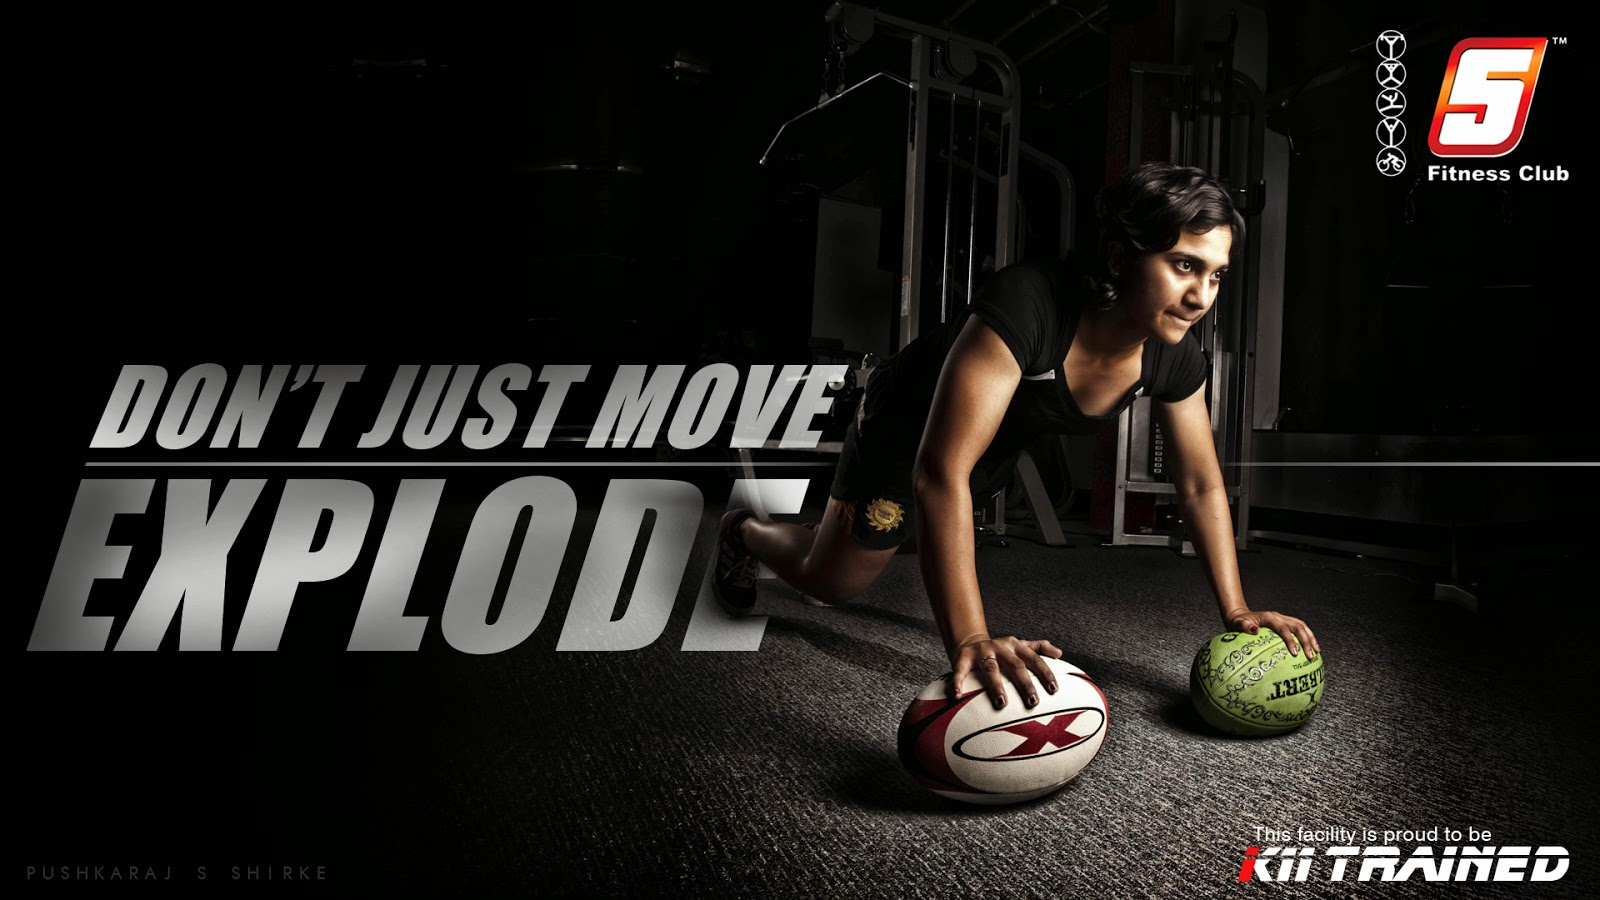 5+fitness+club+rugby+womens+captain+training+gym+surabhi+date+pune+mumbai+pushkaraj+s+shirke+photography+poster_04.jpg